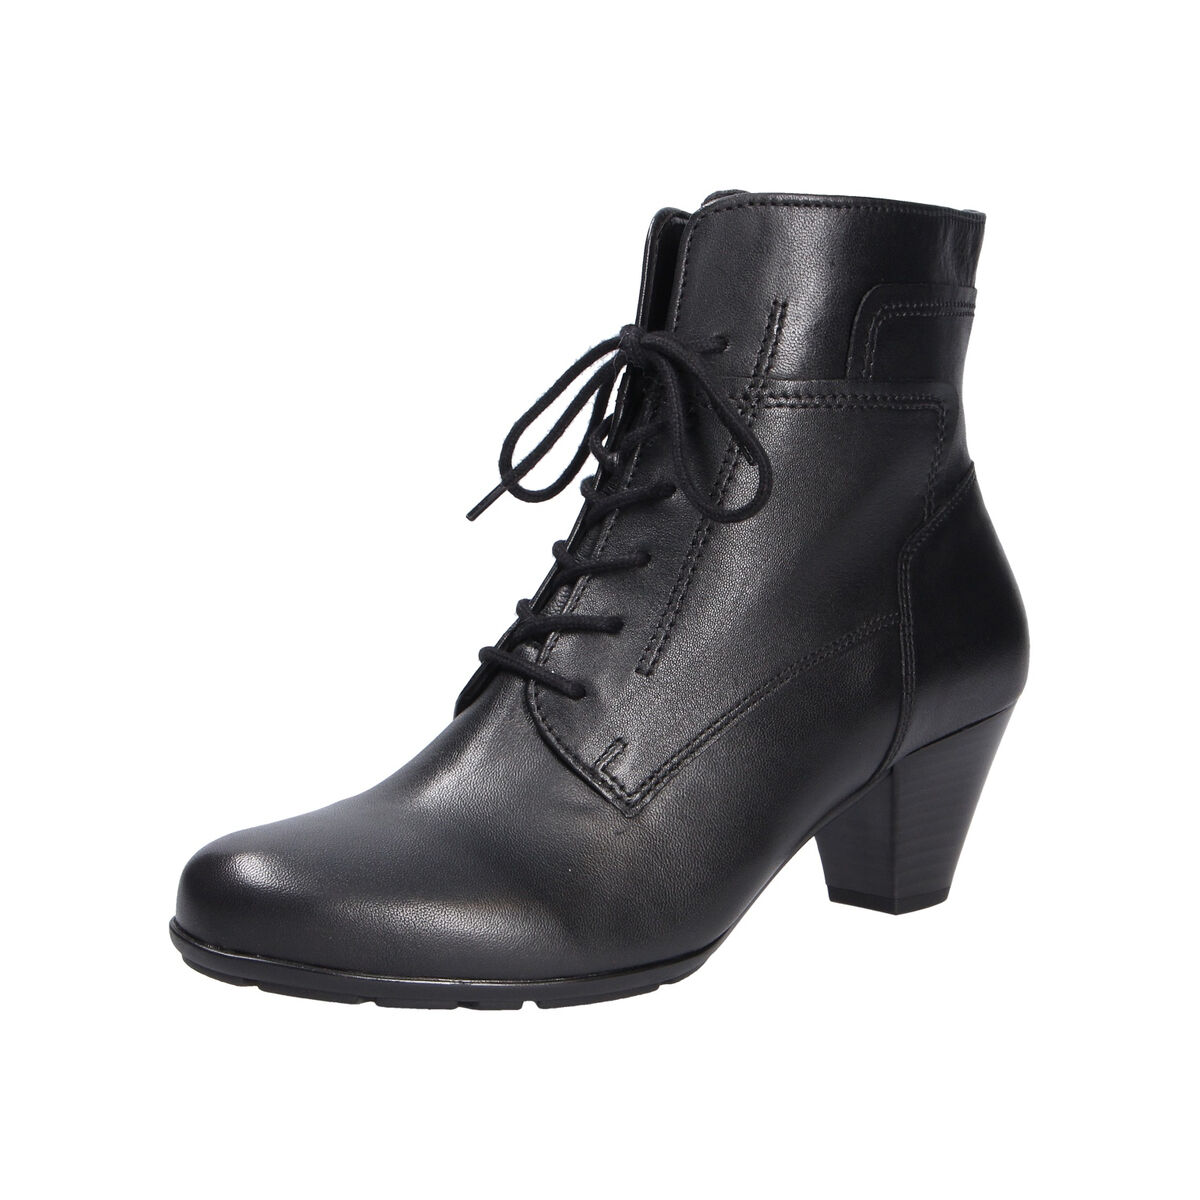 new product 84d60 988bb Fashion Stiefel/Boot, EUR 36